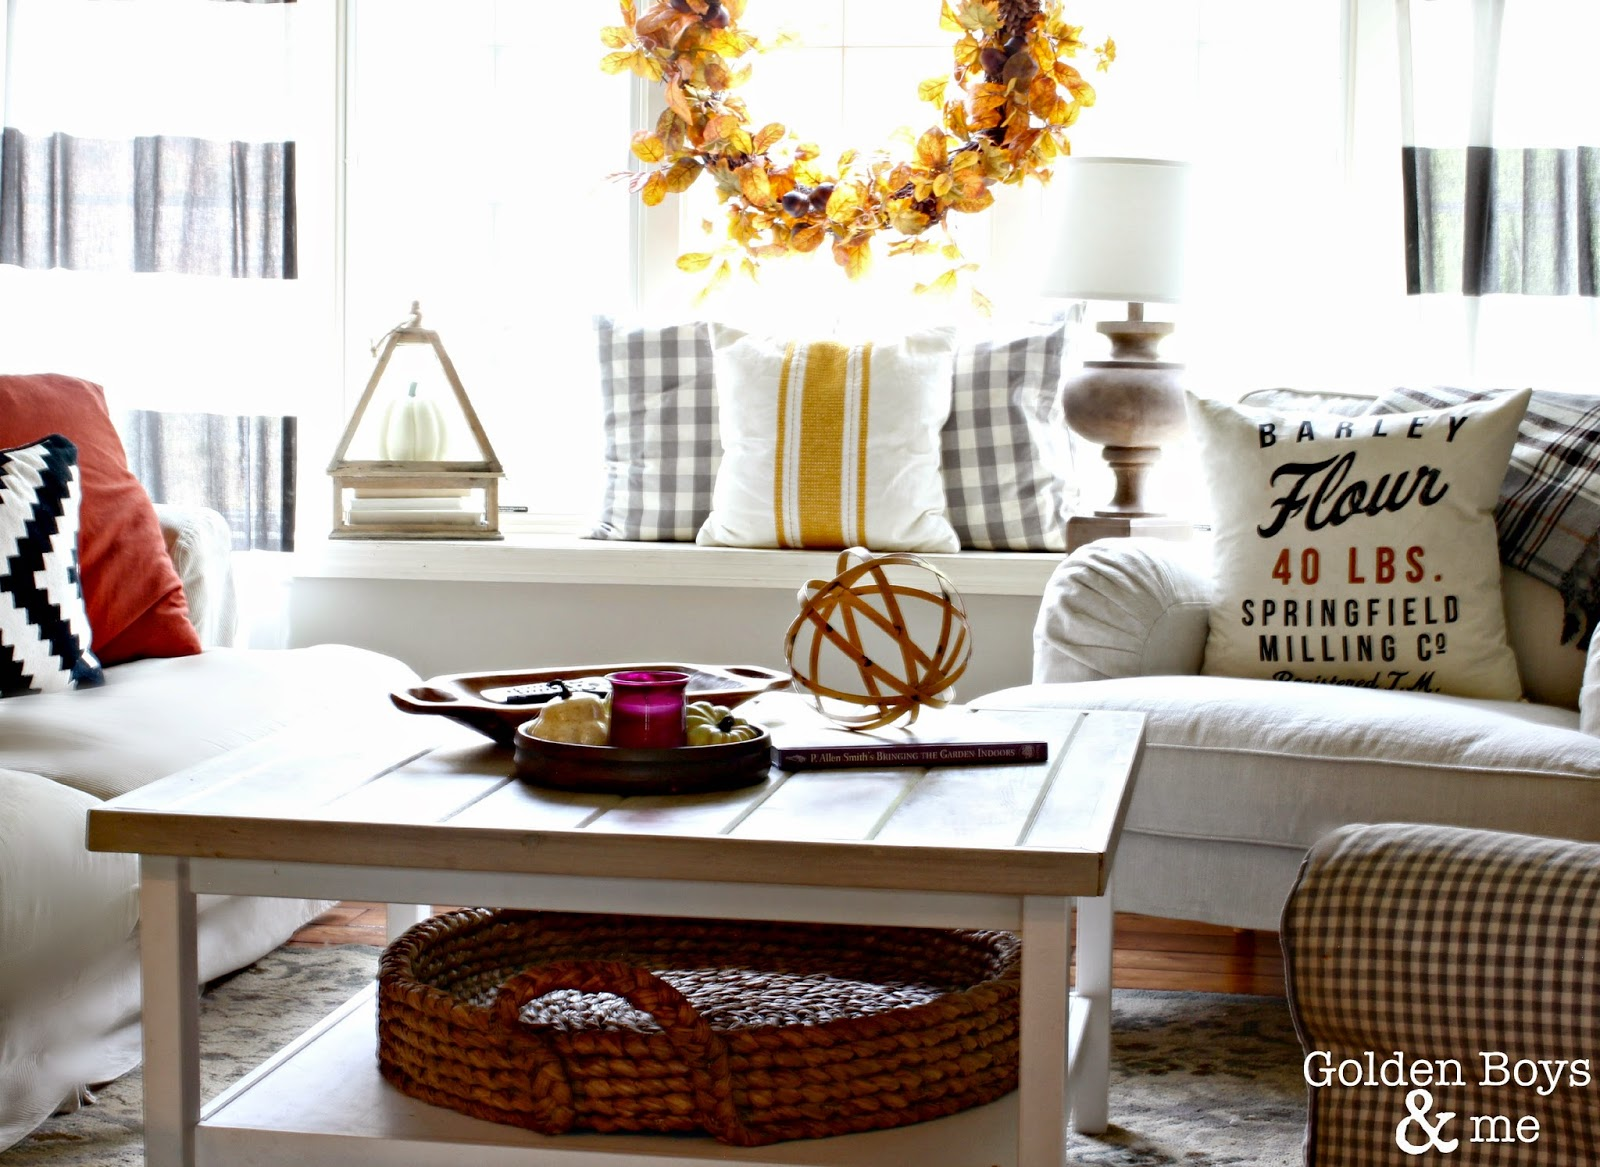 Ikea Stocksund, Hemnes and Jennylund in fall living room with striped drapes-www.goldenboysandme.com